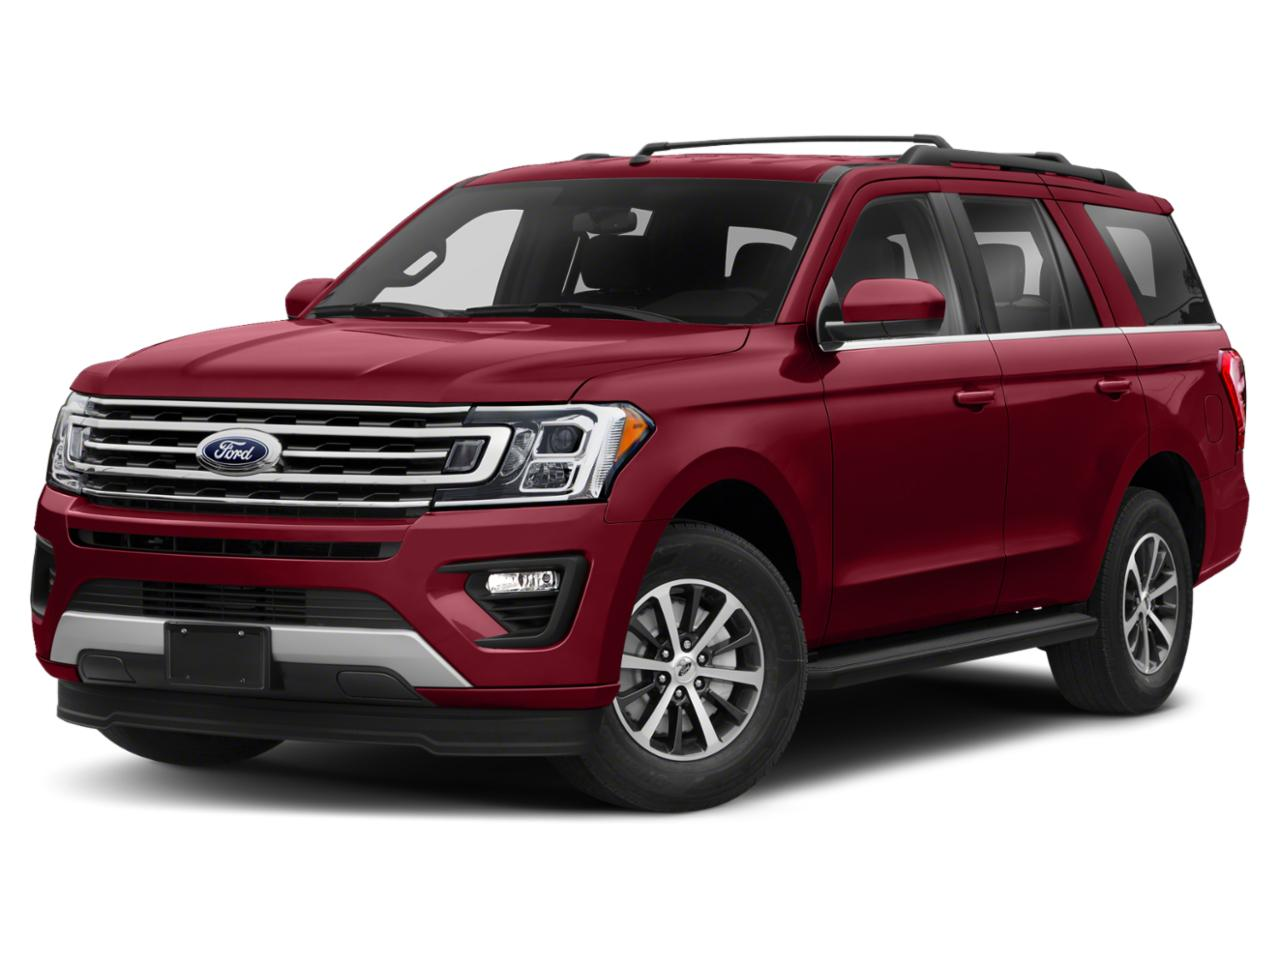 2018 Ford Expedition Vehicle Photo in Darlington, SC 29532